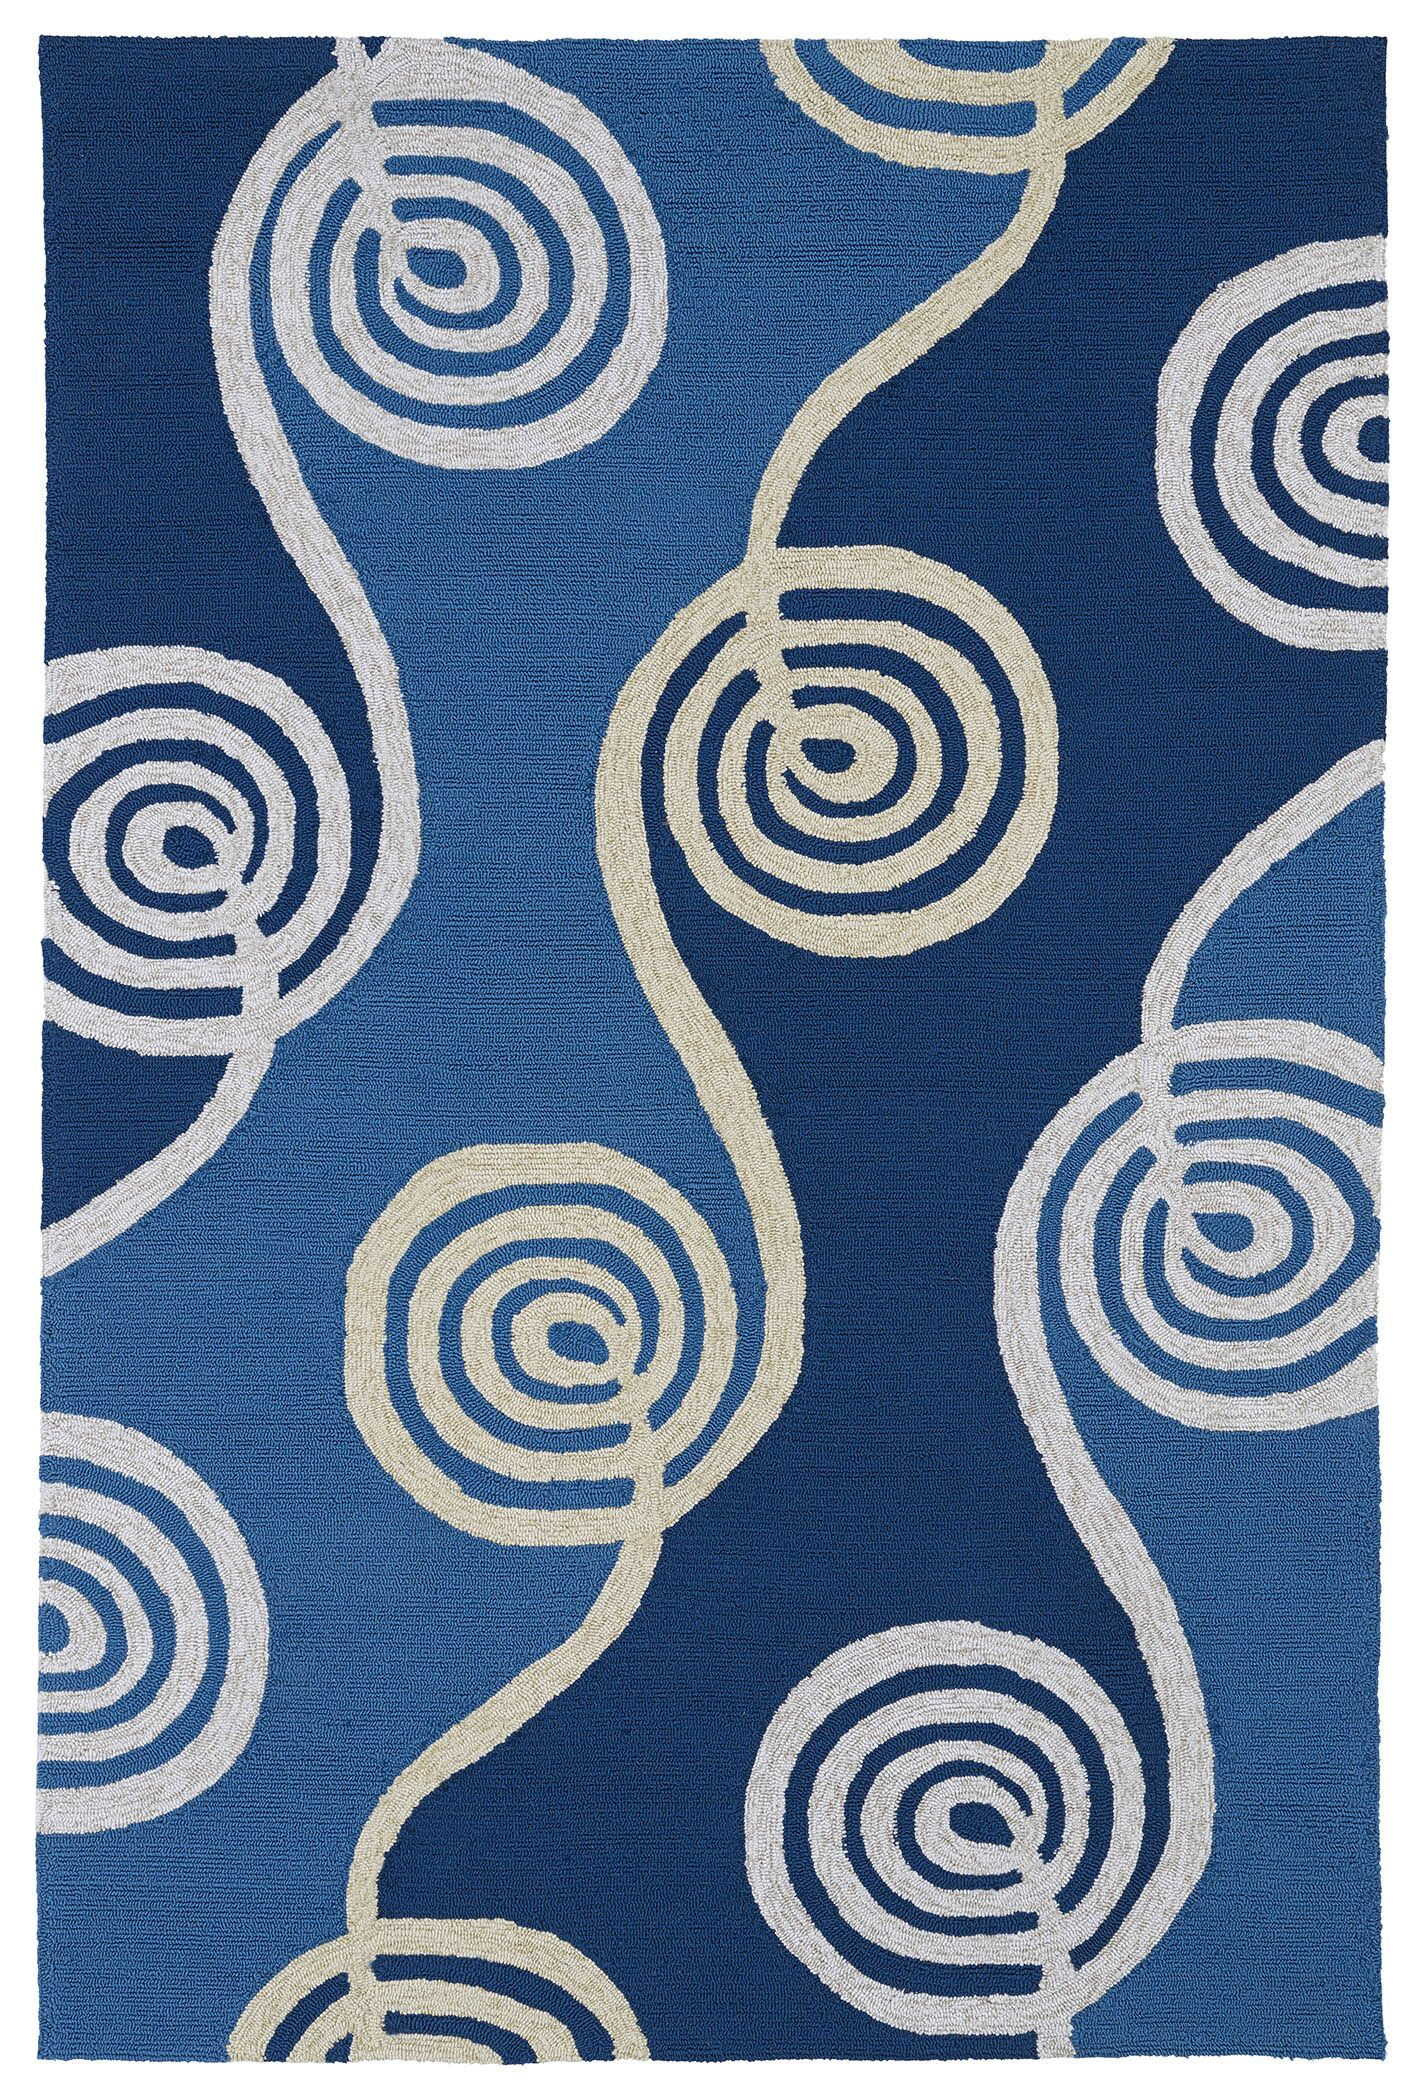 Susana Blue Indoor/Outdoor Area Rug Rug Size: Rectangle 7'6